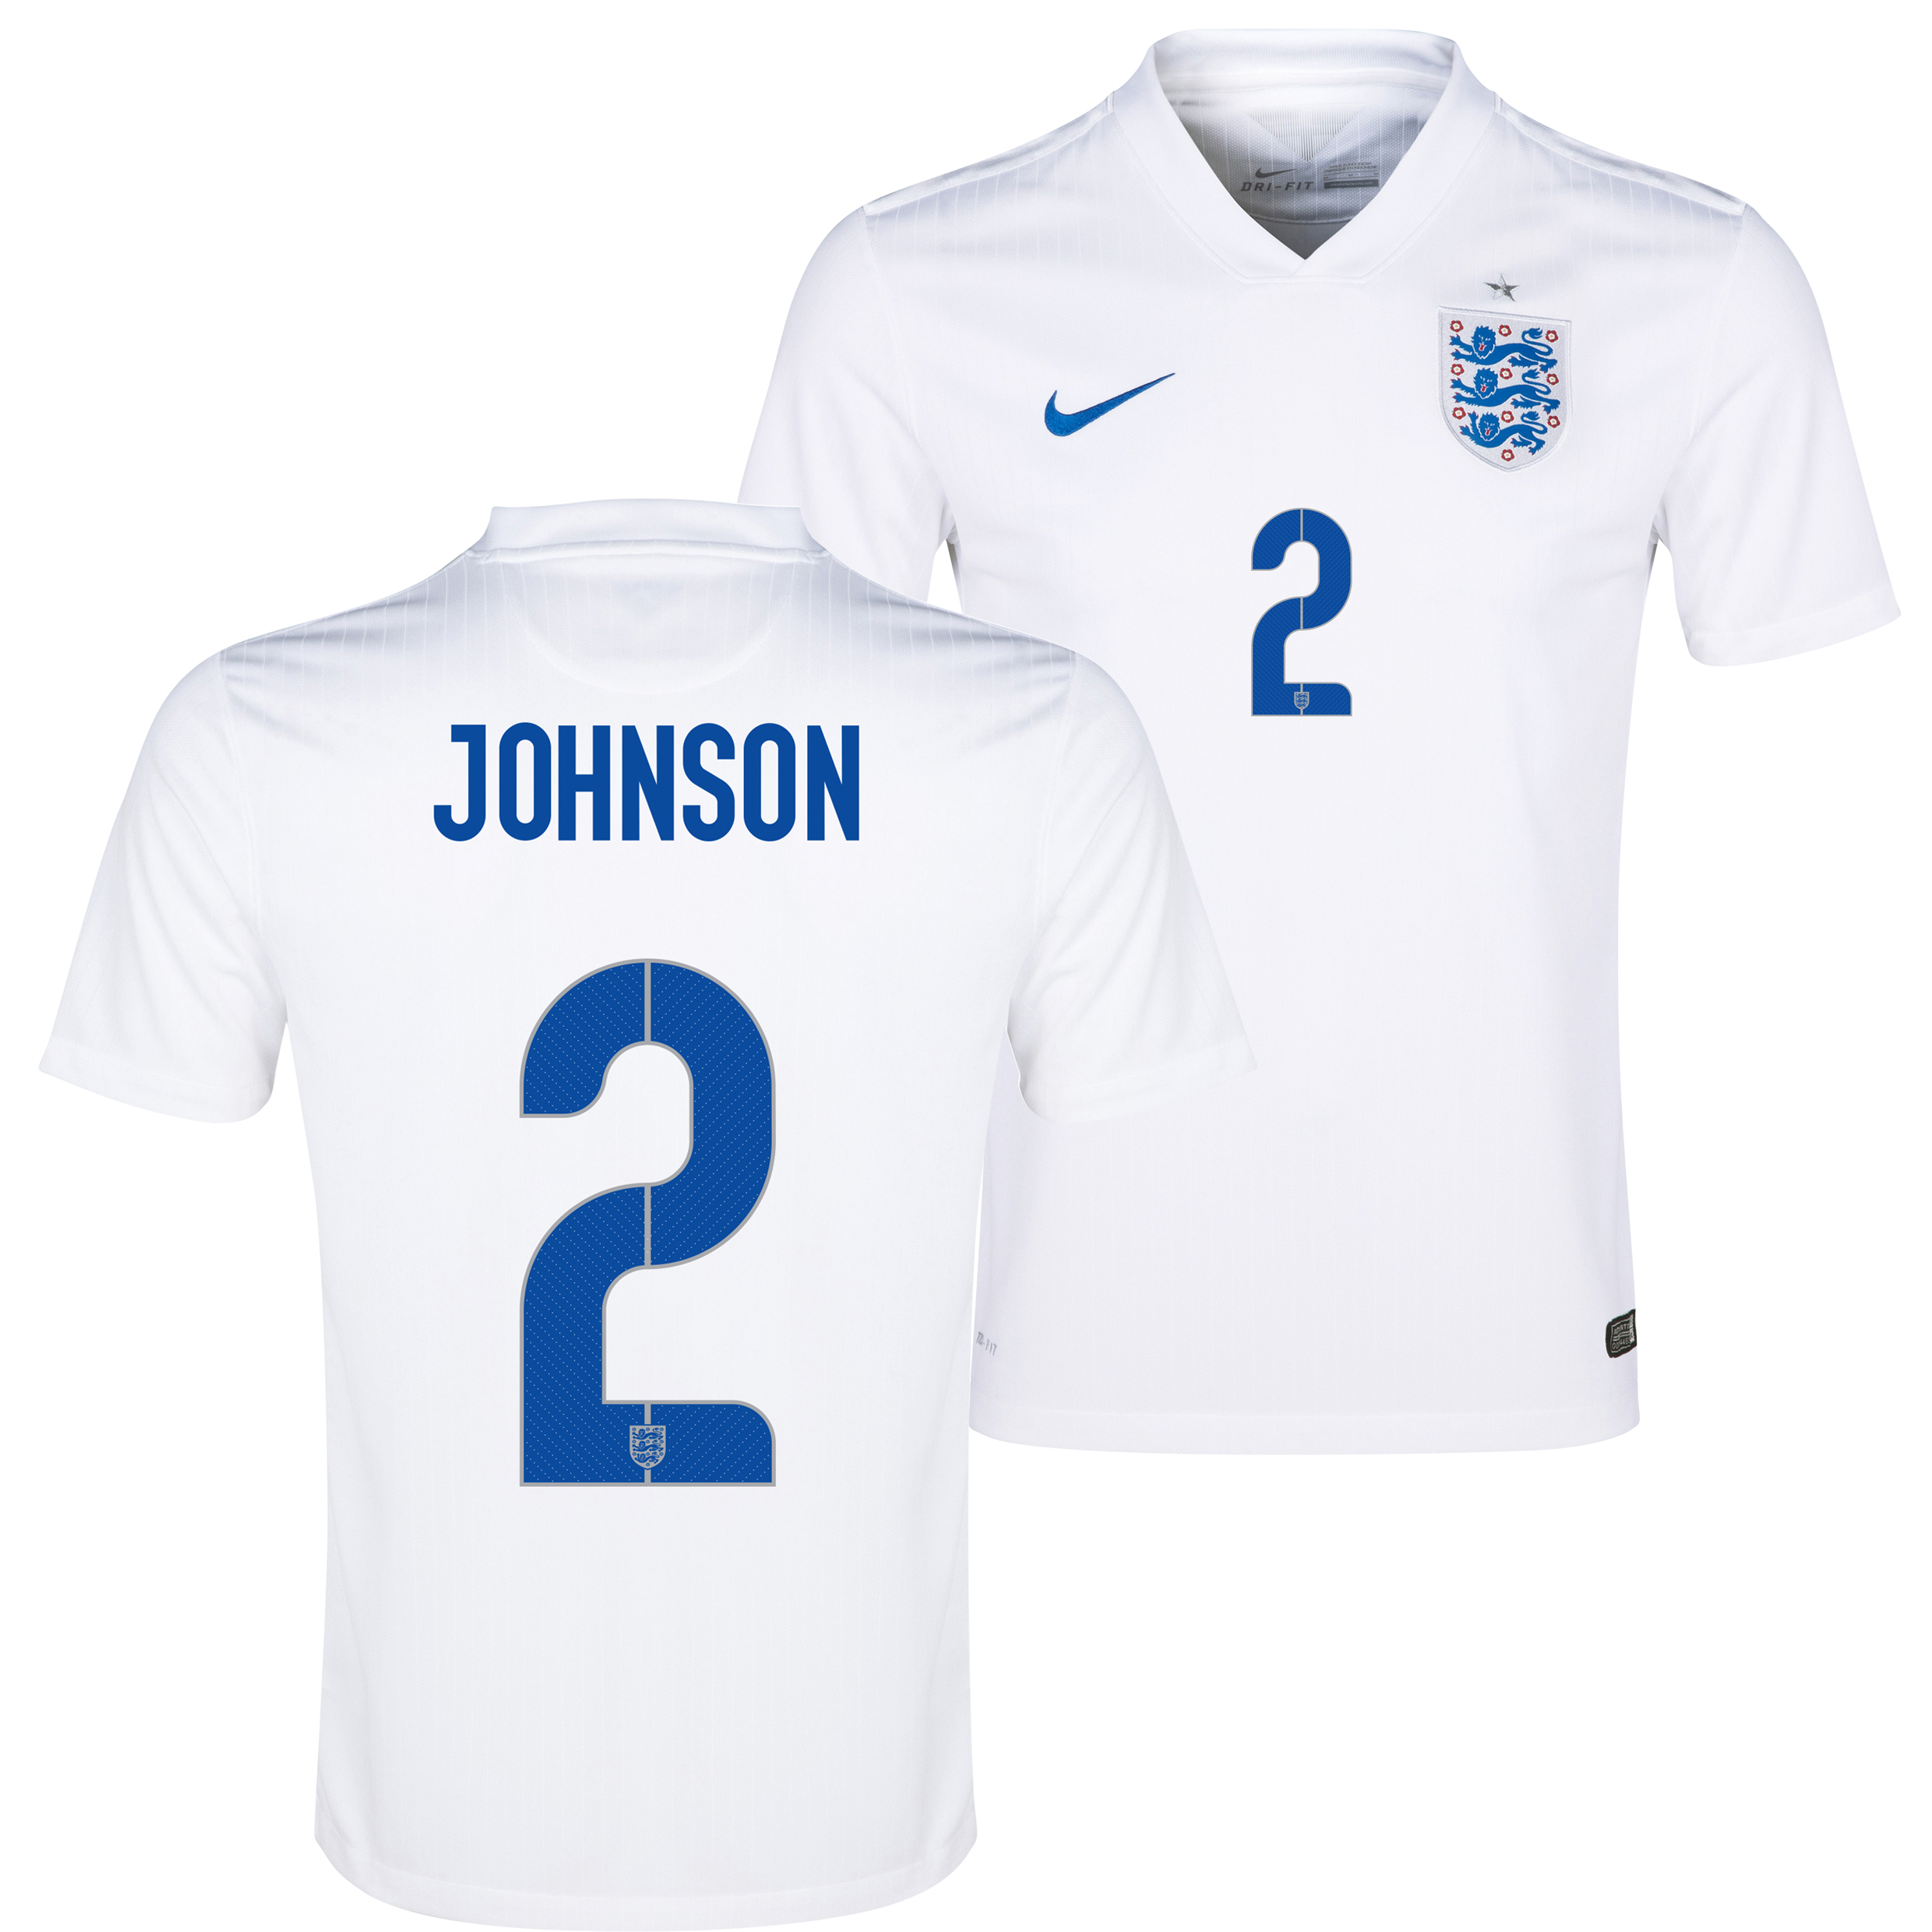 England Home Shirt 2014/15 White with Johnson 2 printing